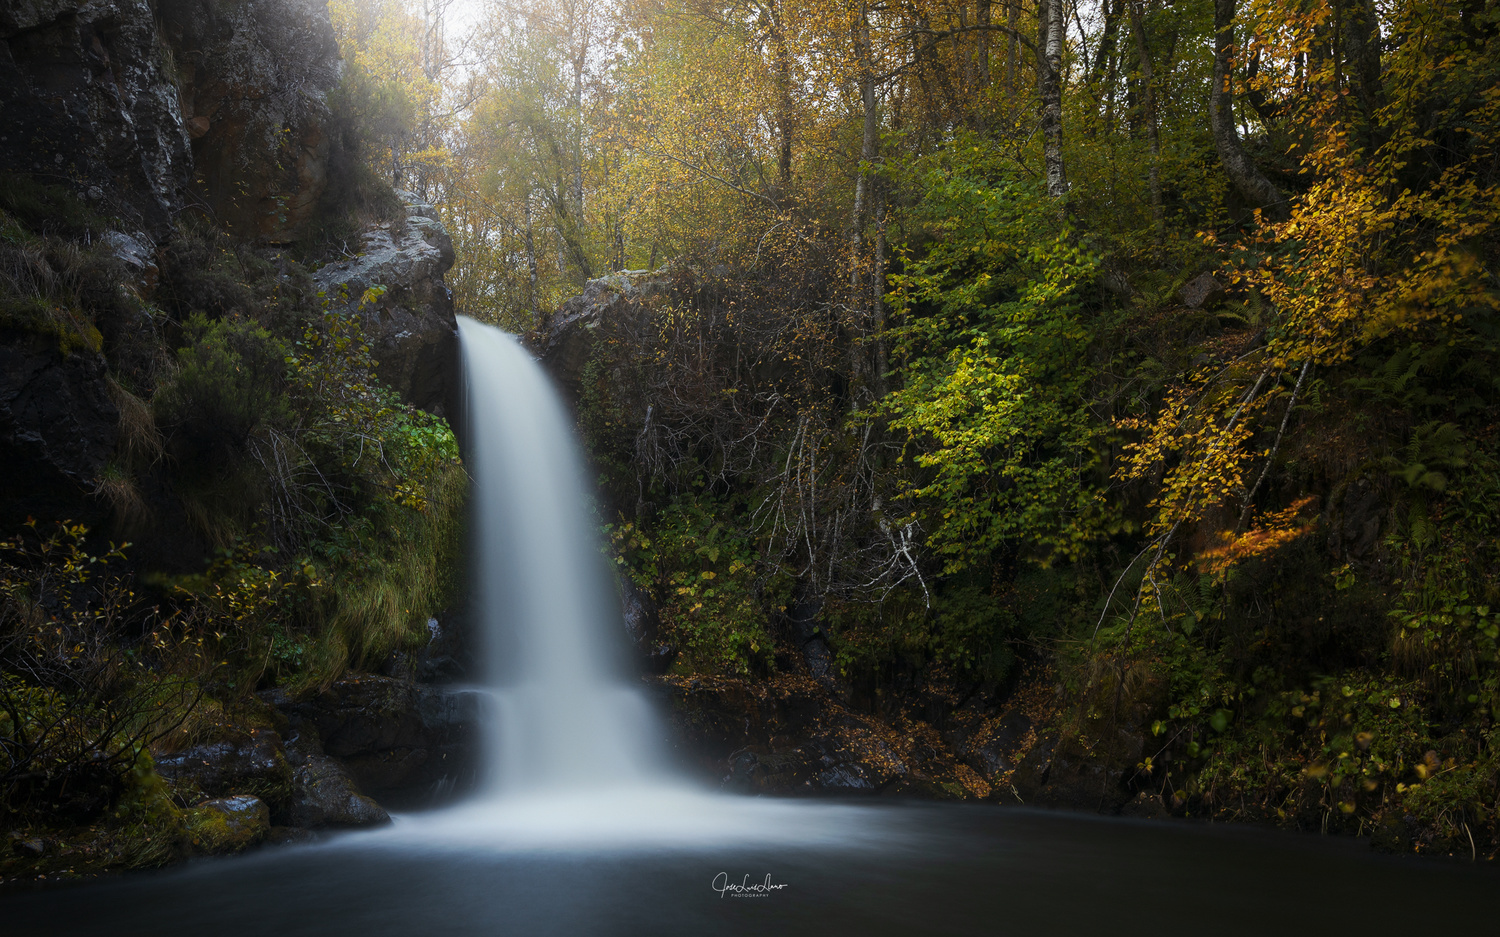 Forfogones waterfall by Jose Luis Llano